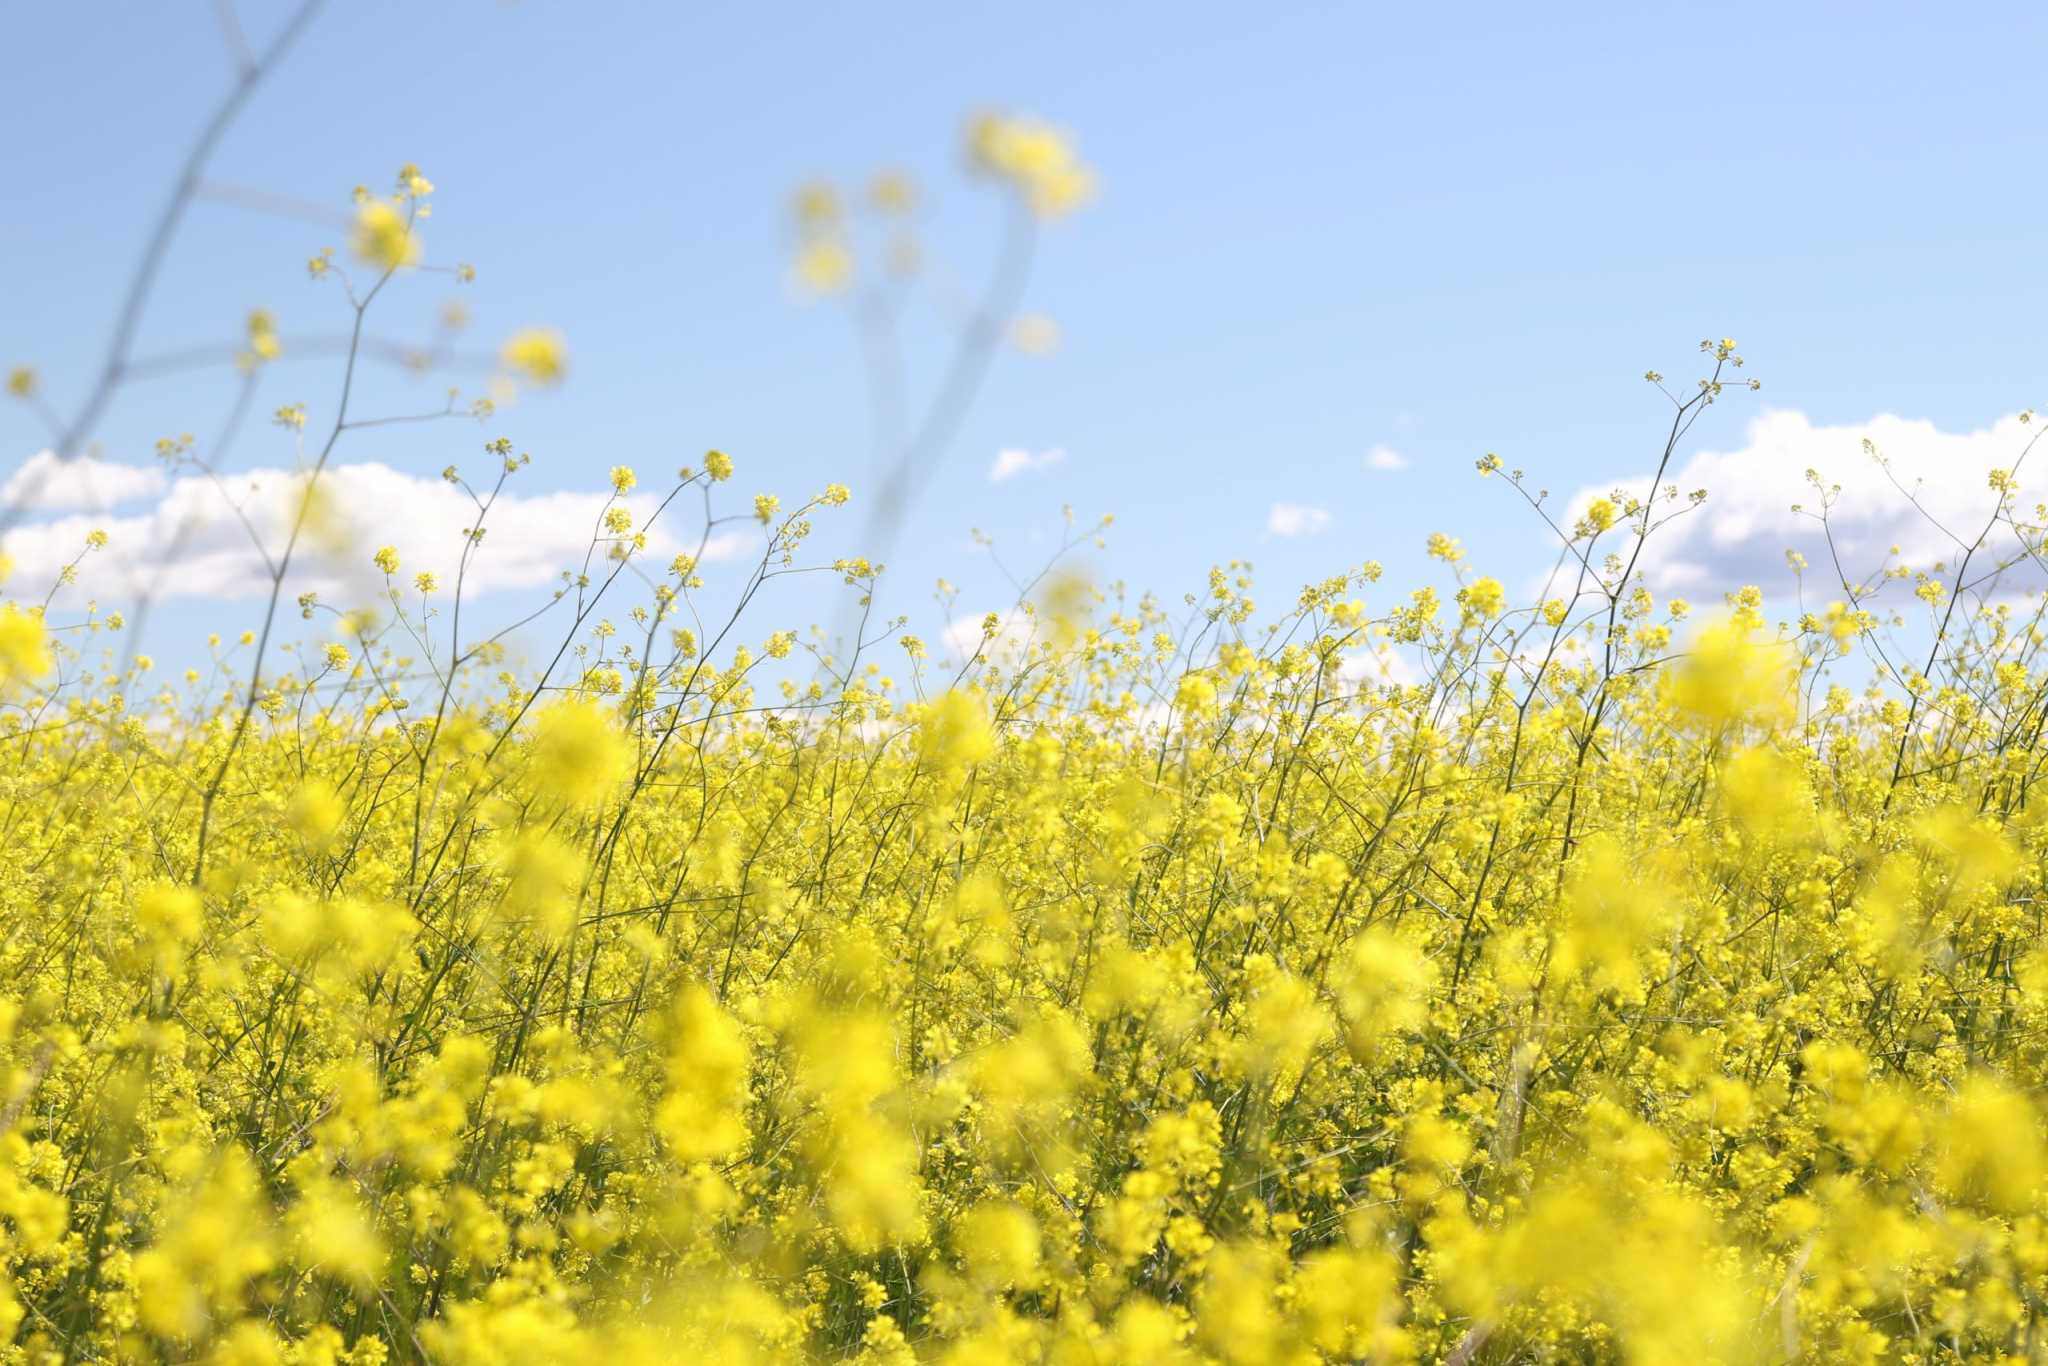 Field of puffy yellow flowers and pale blue sky